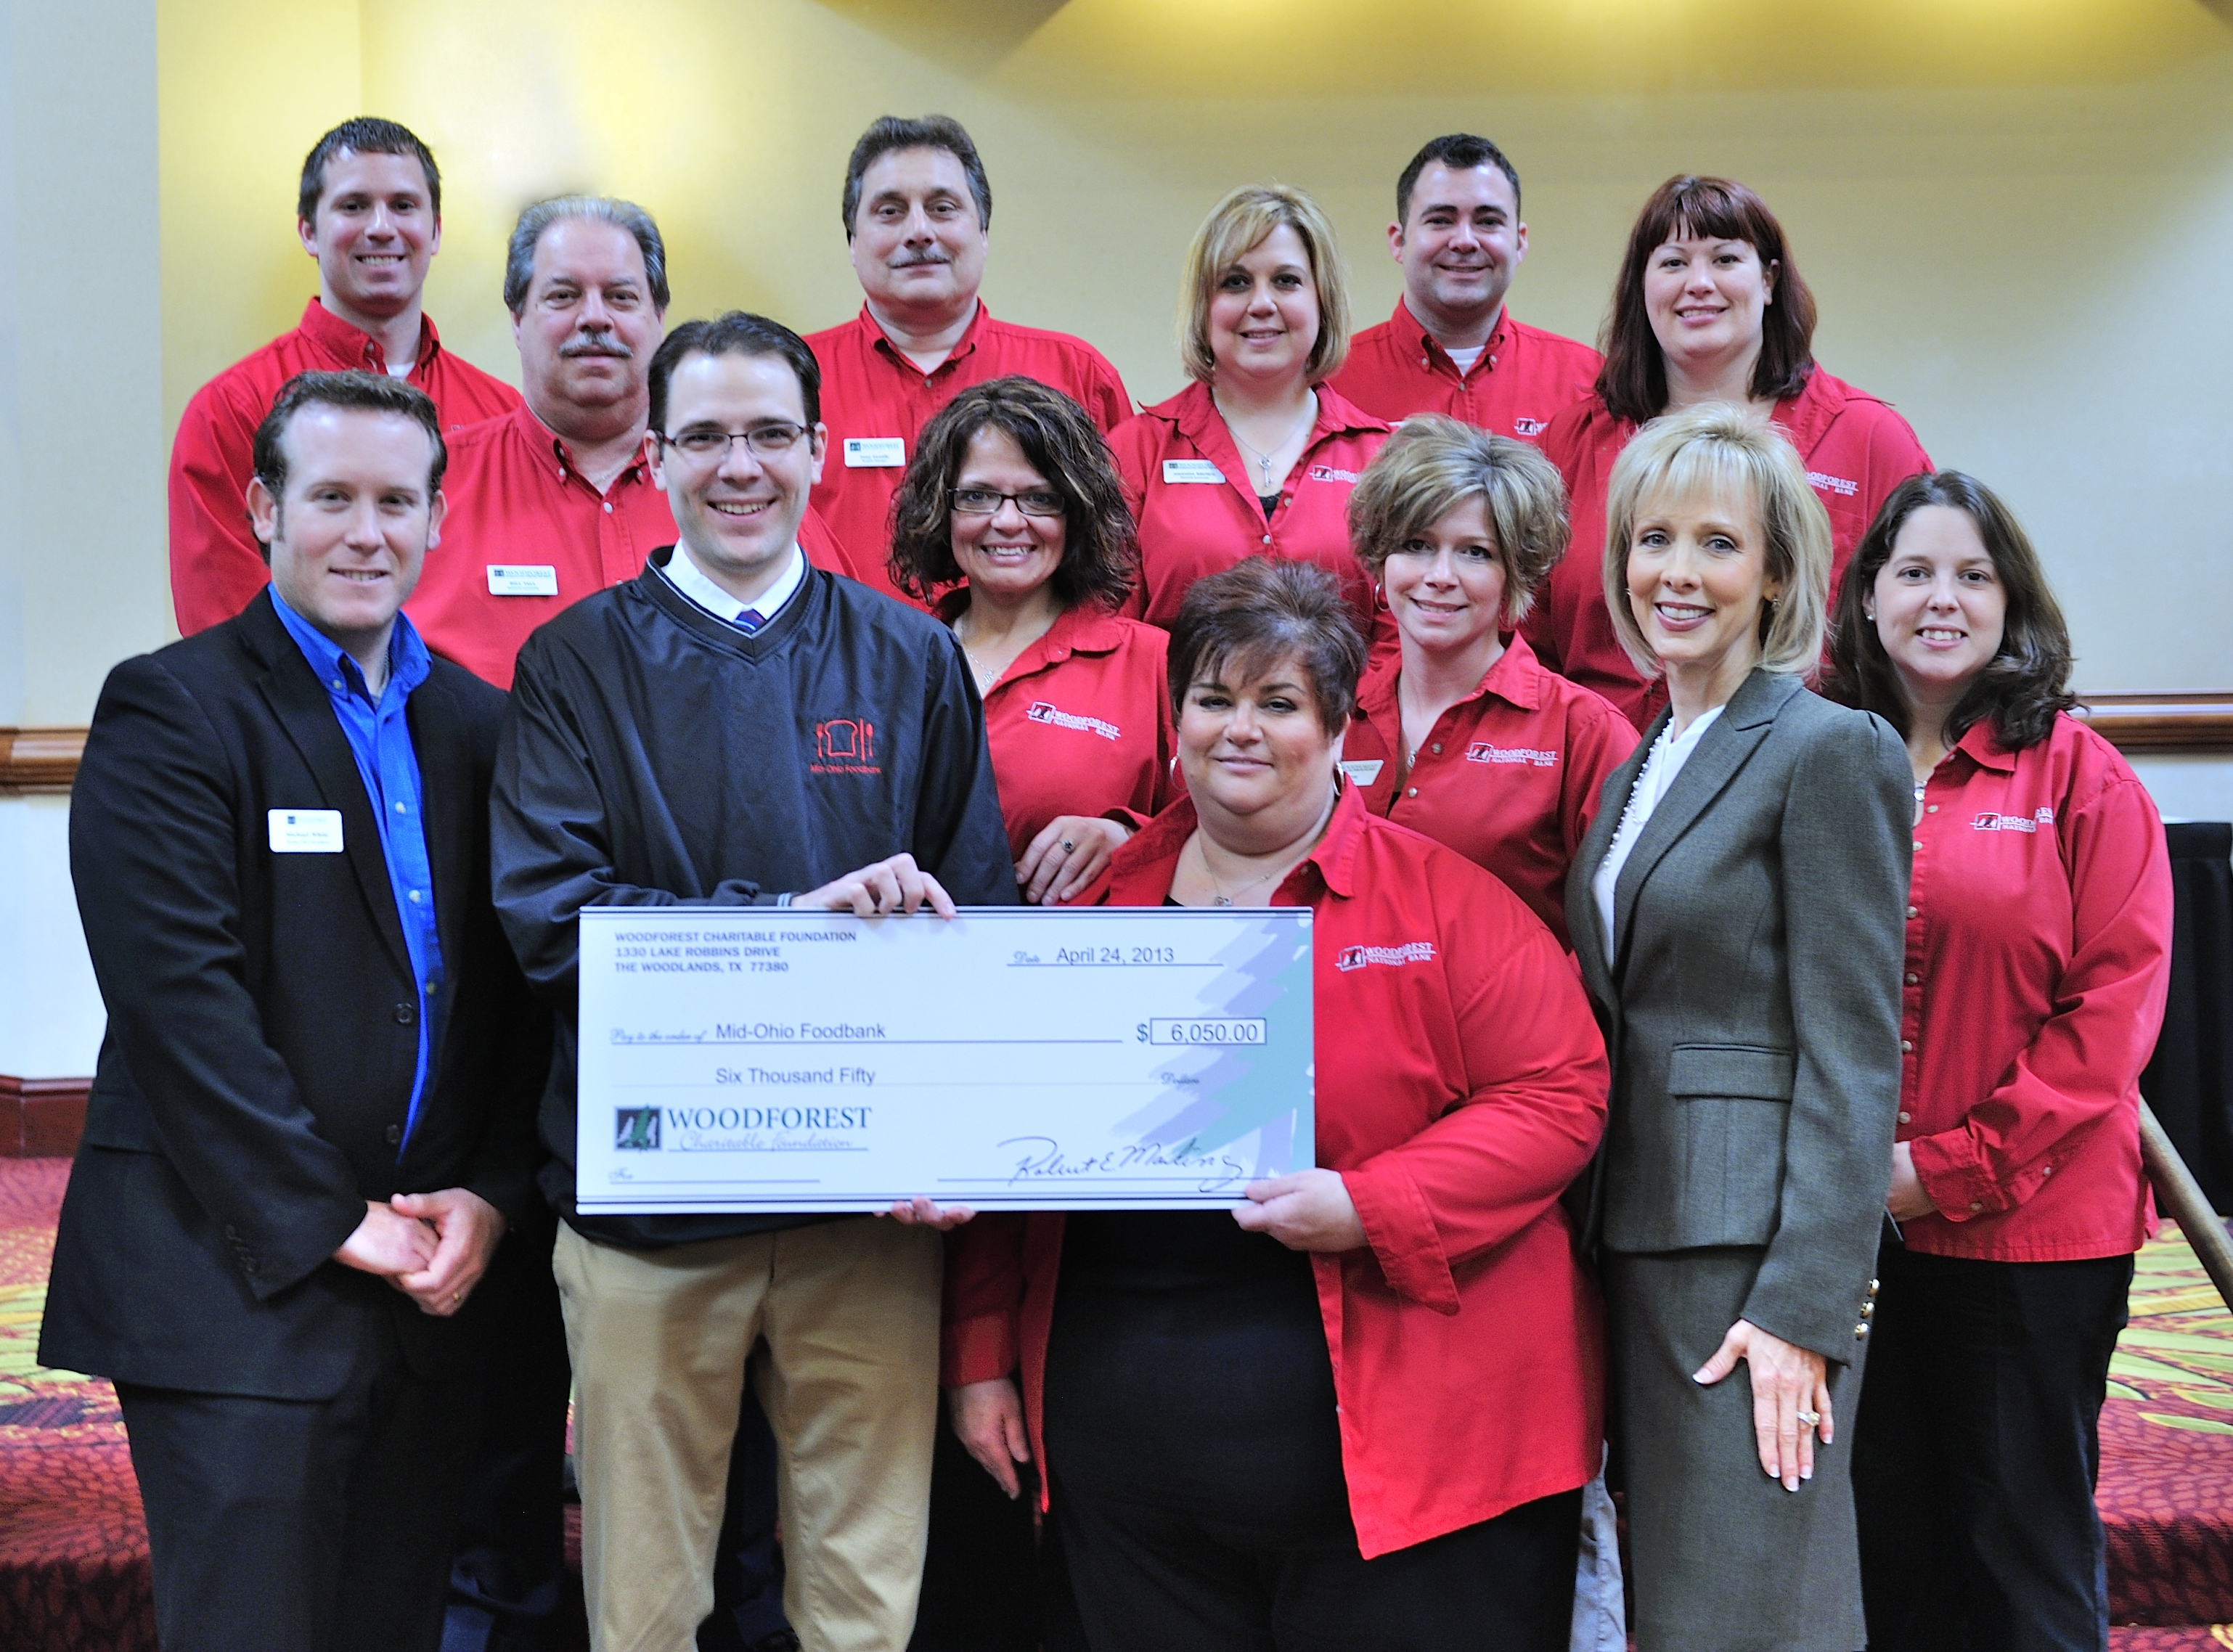 Mid-Ohio Food Bank receives $6,050 donation from Woodforest Charitable Foundation.